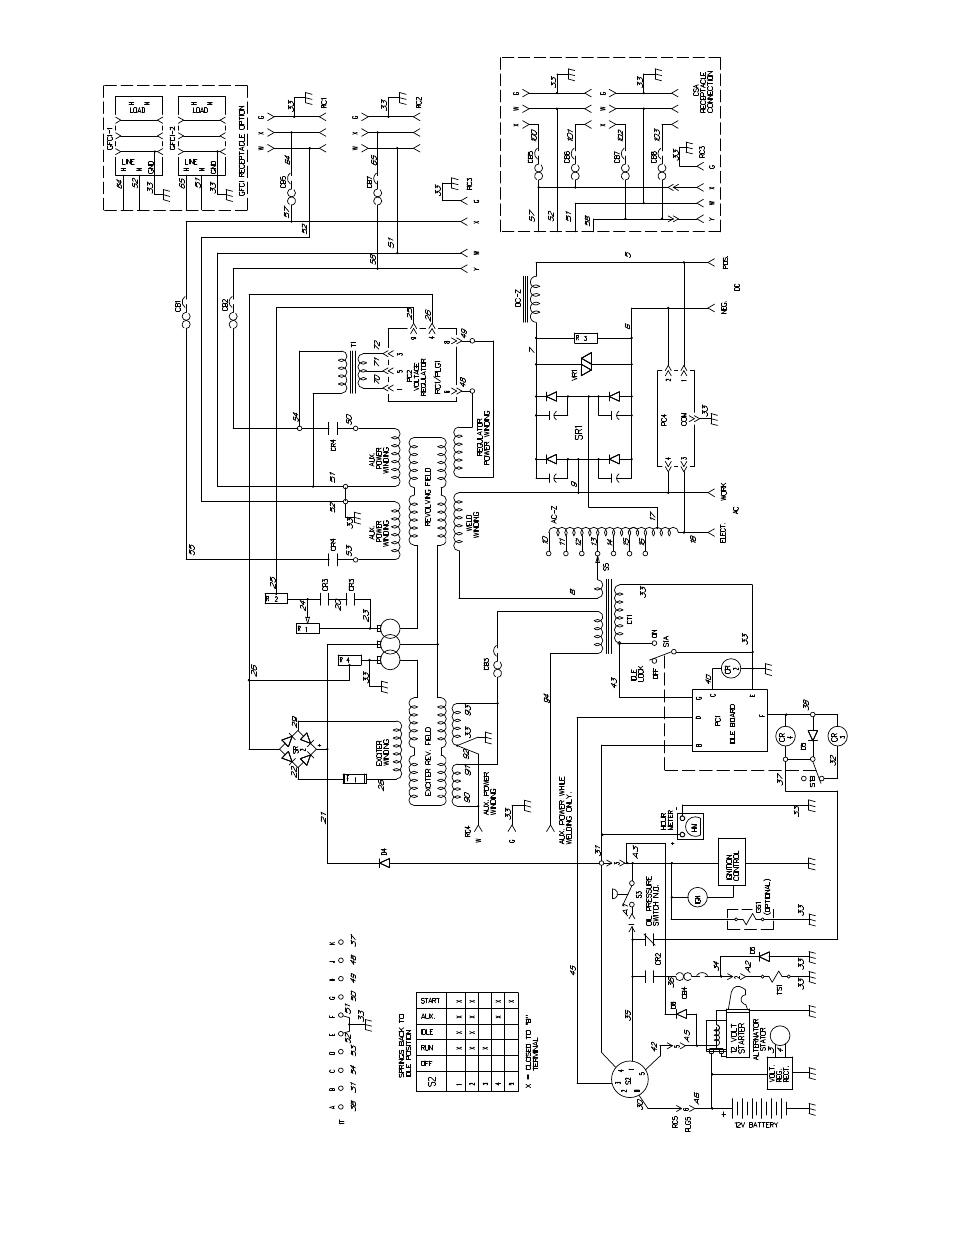 Miller Welder Wiring Diagram Tig Foot Pedal 250 Legend Free Download Xwiaw